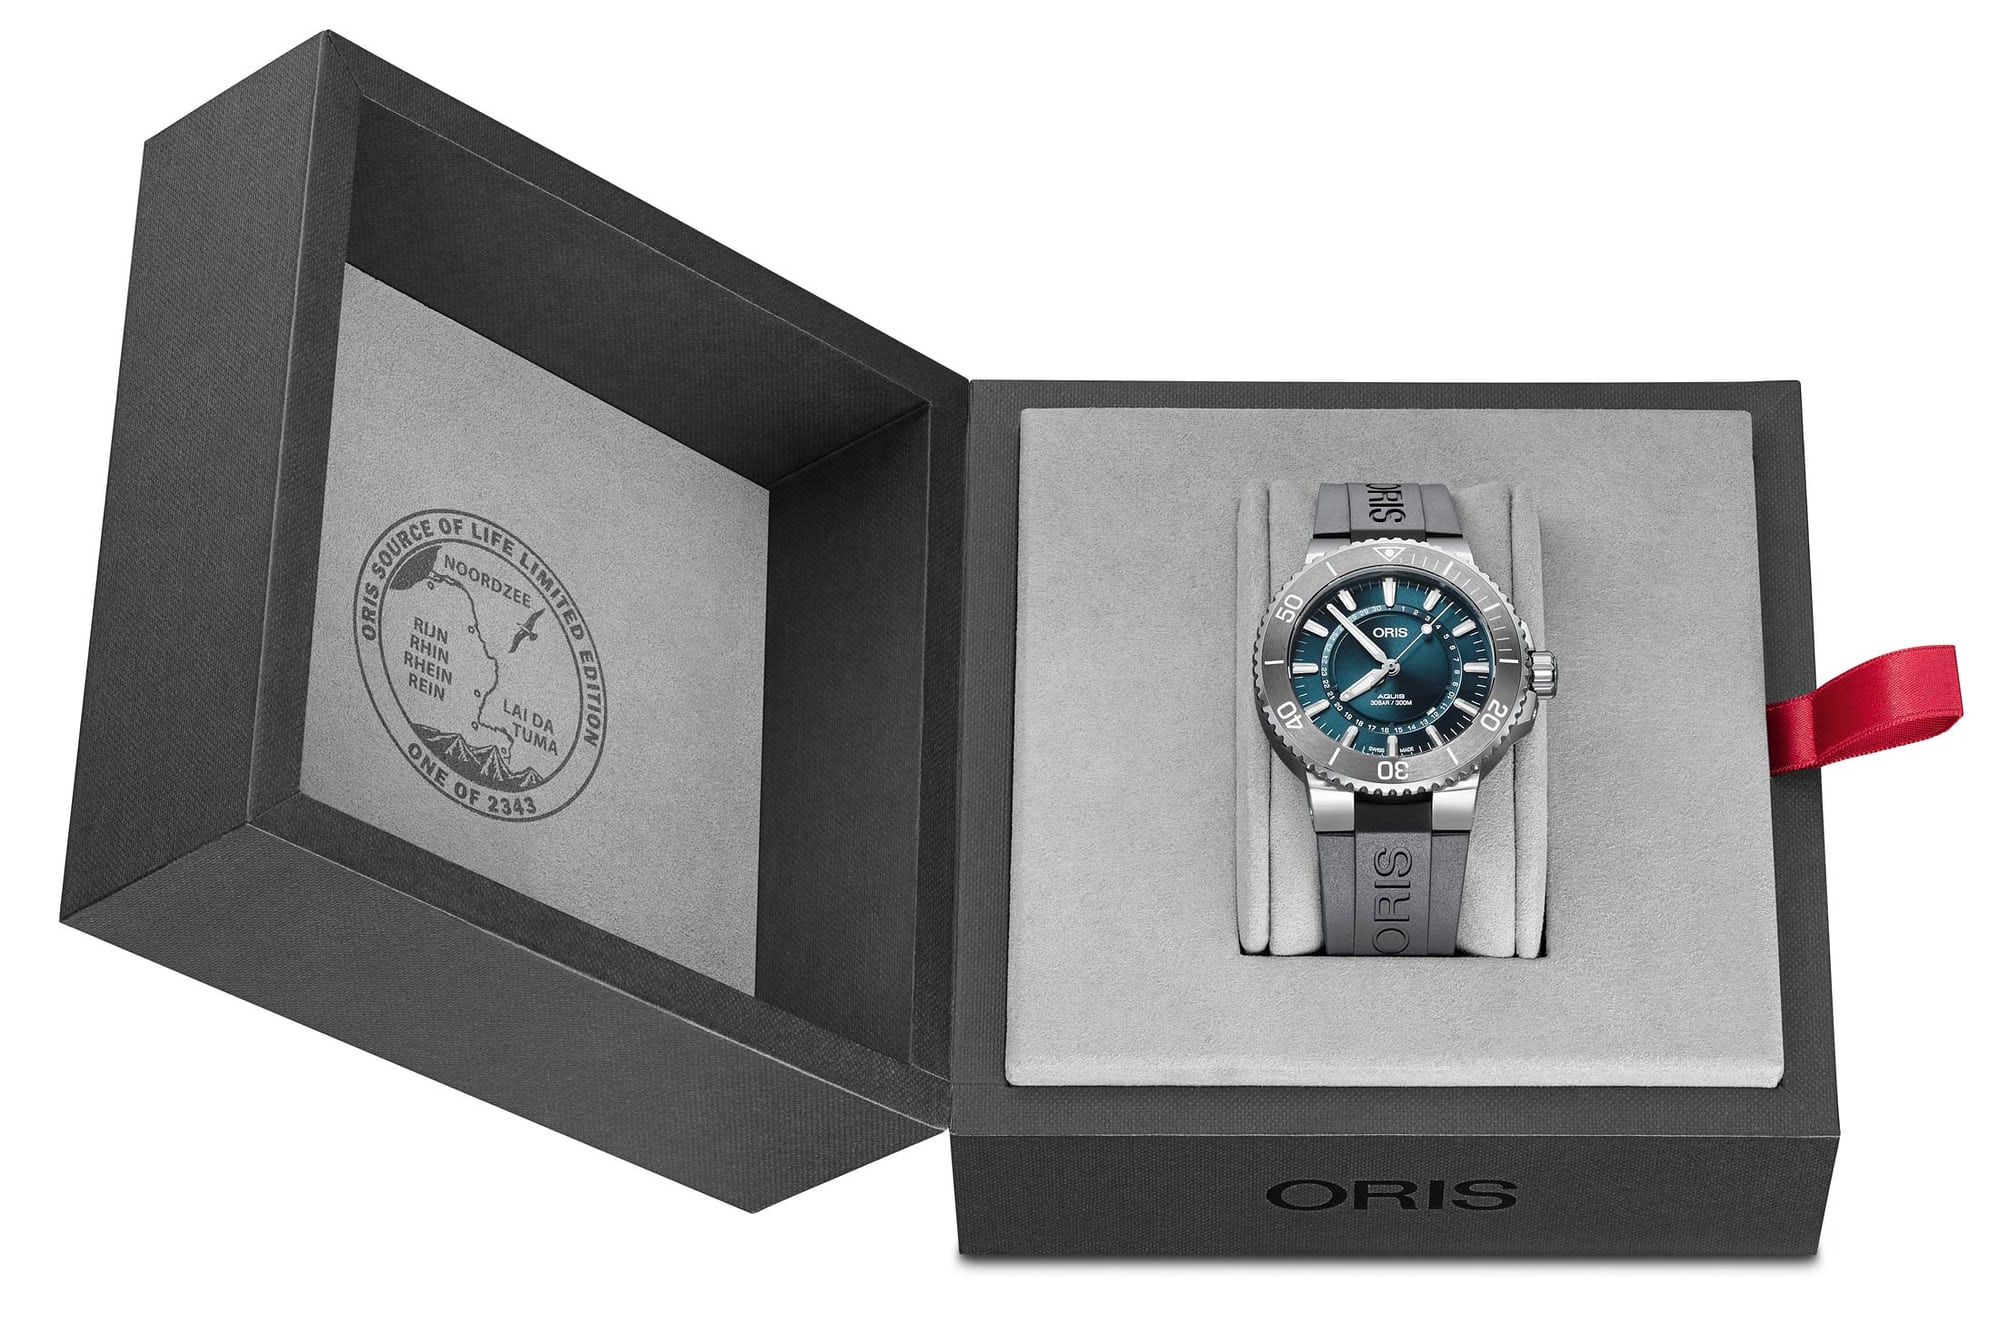 Introducing: The Oris 'Source Of Life' Limited Edition Introducing: The Oris 'Source Of Life' Limited Edition oris 2